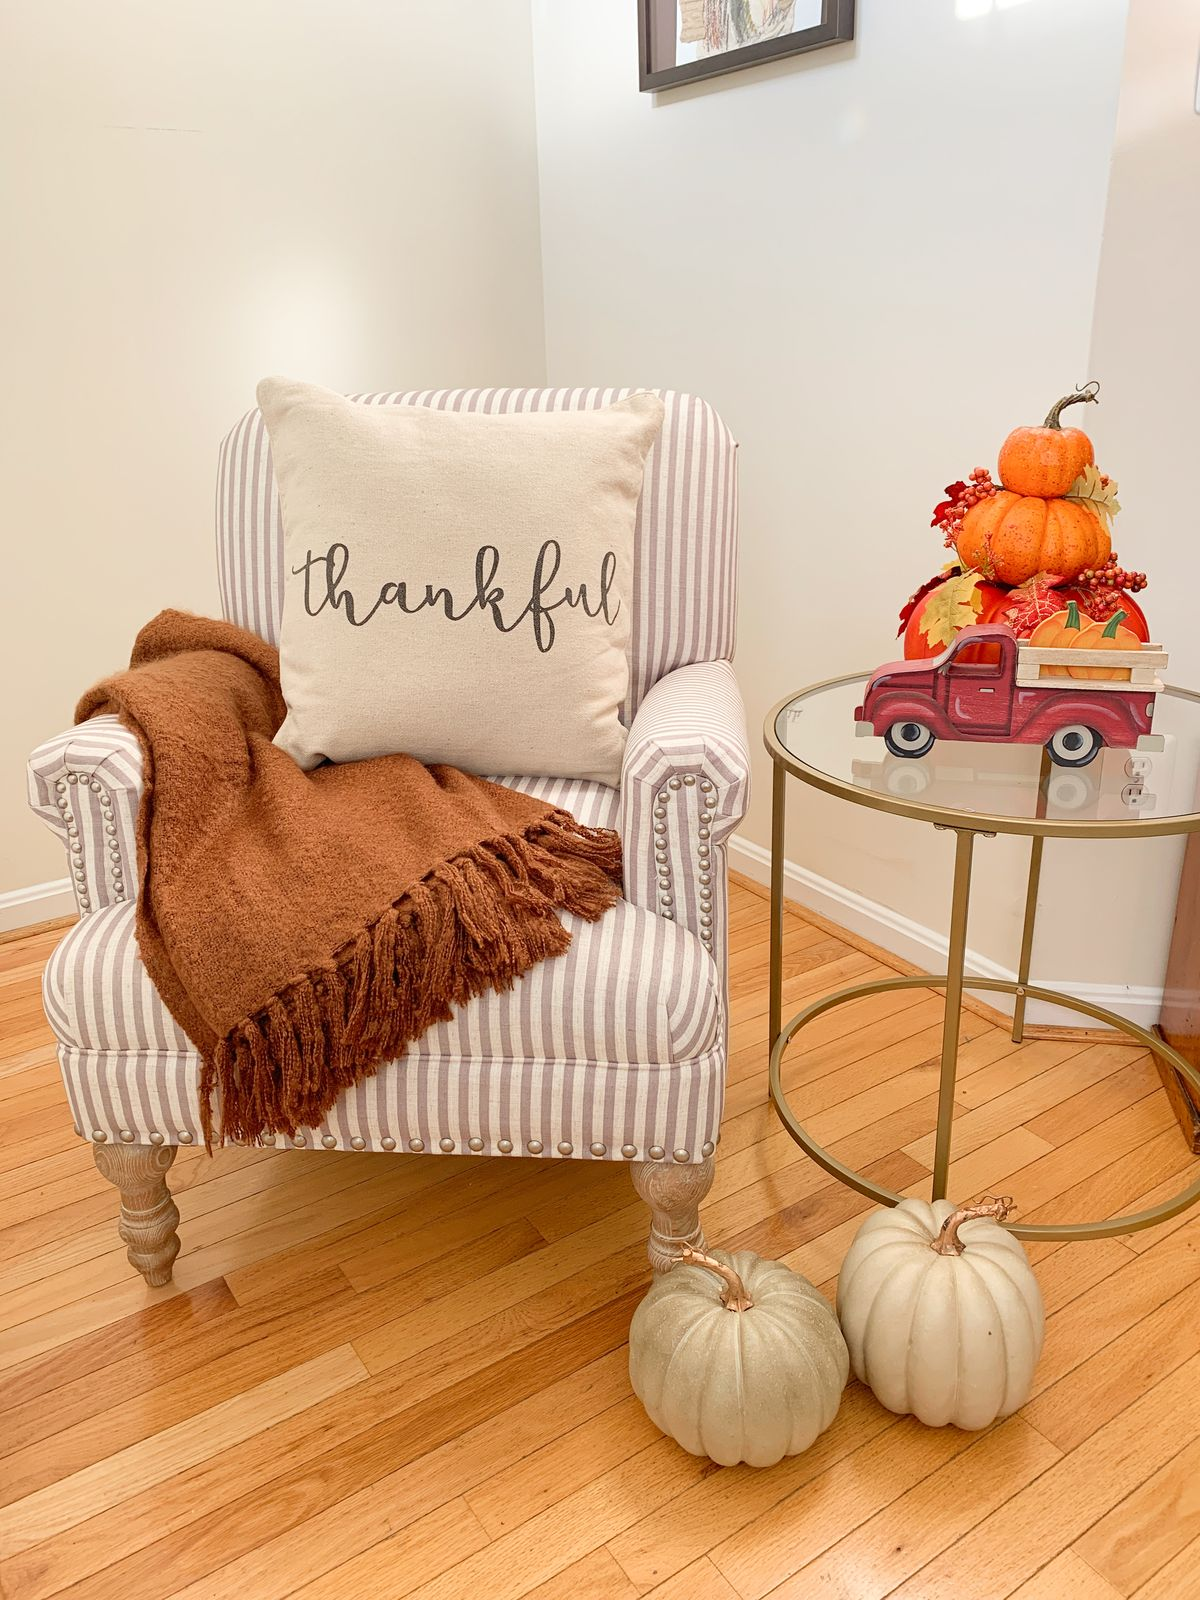 Cozy Fall Accent Chair Decor - Beige striped chair from Walmart, rust orange blanket, pumpkin decor and fall harvest truck decor